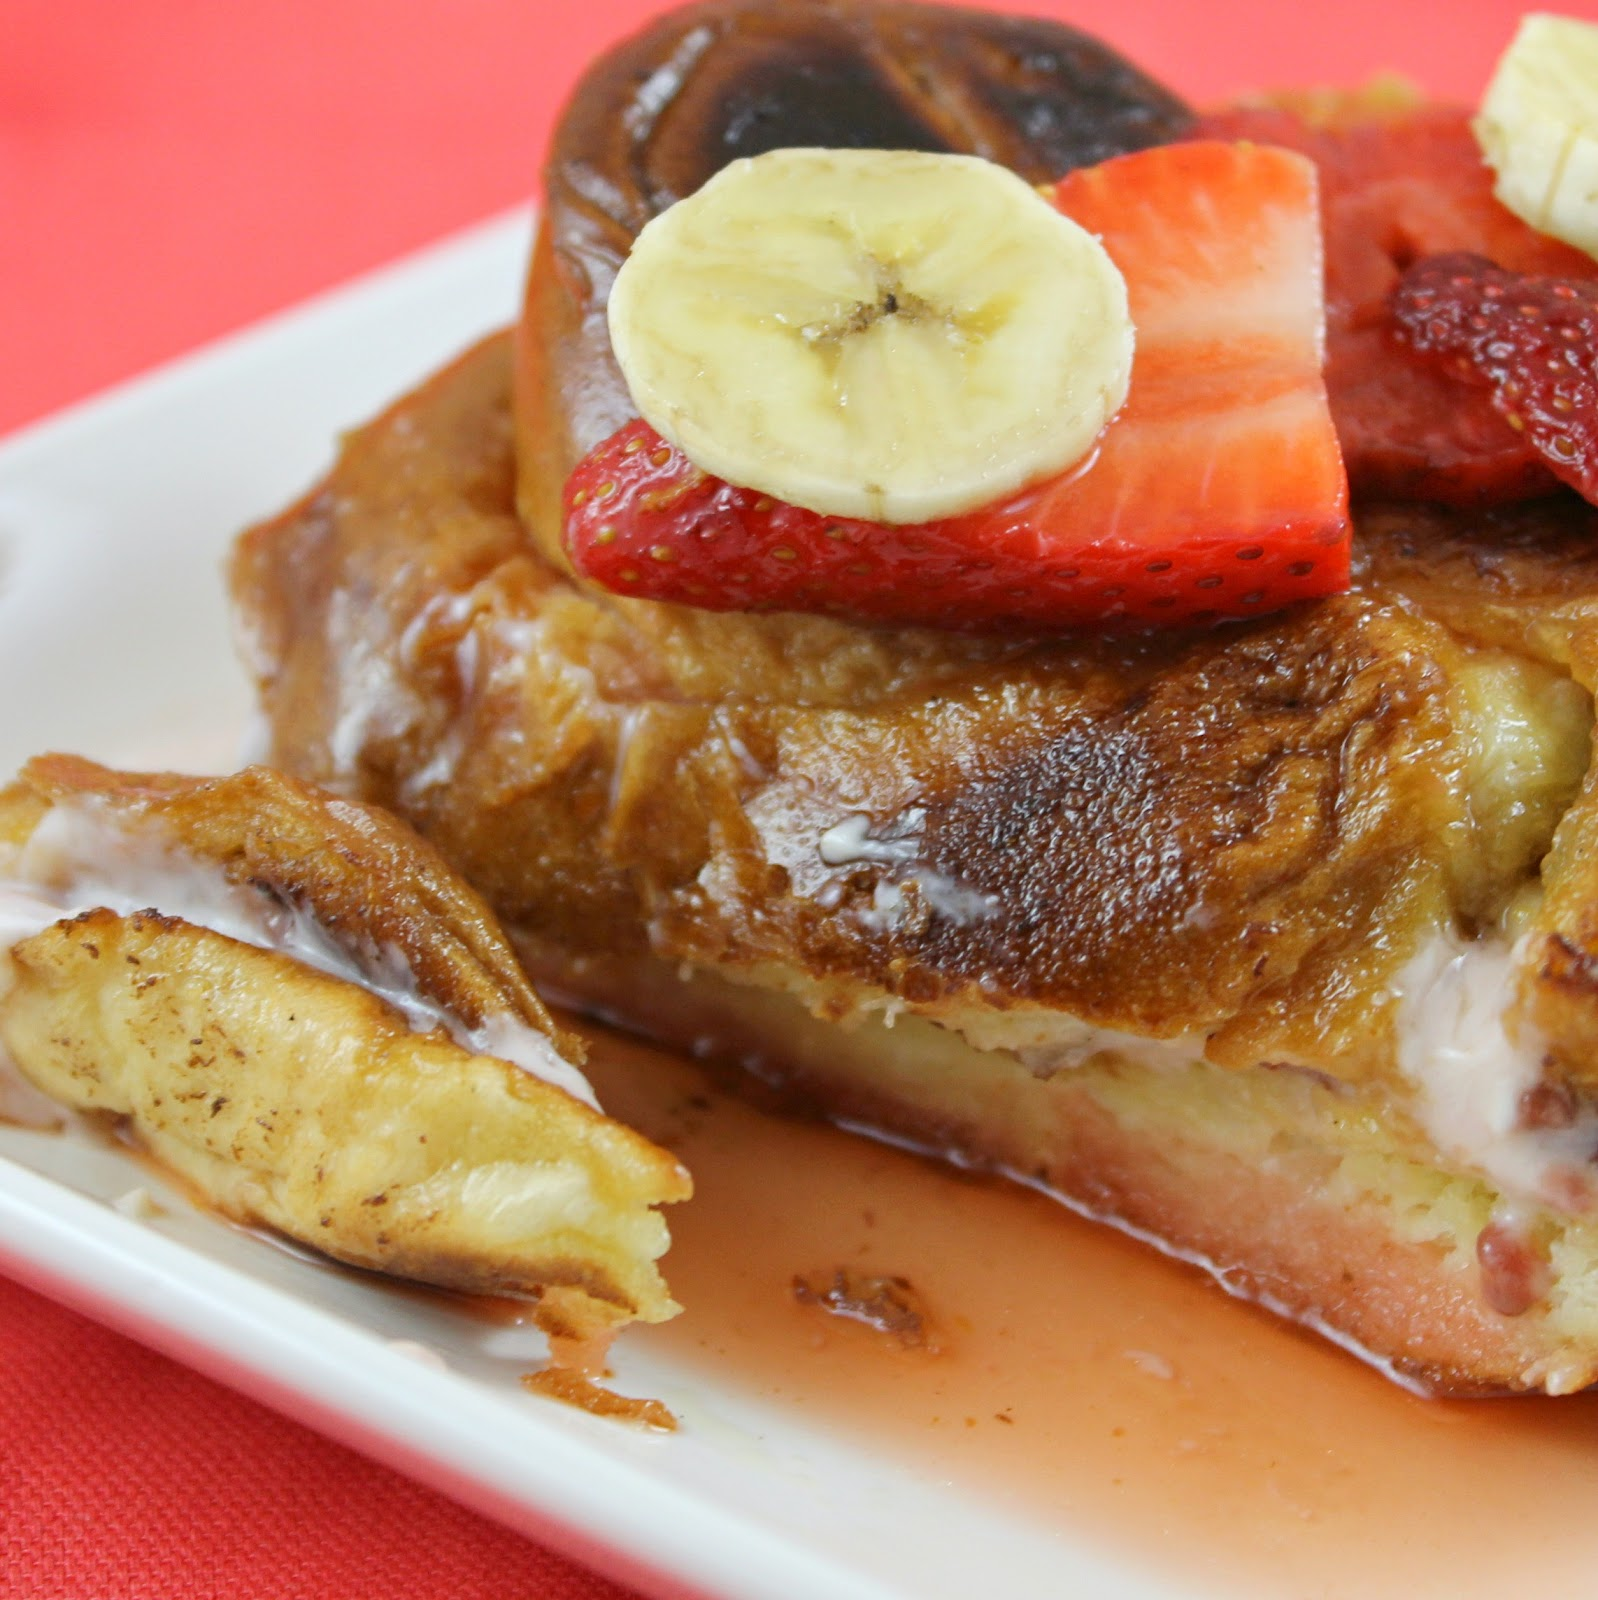 Strawberry-Banana Stuffed French Toast | I Can Cook That